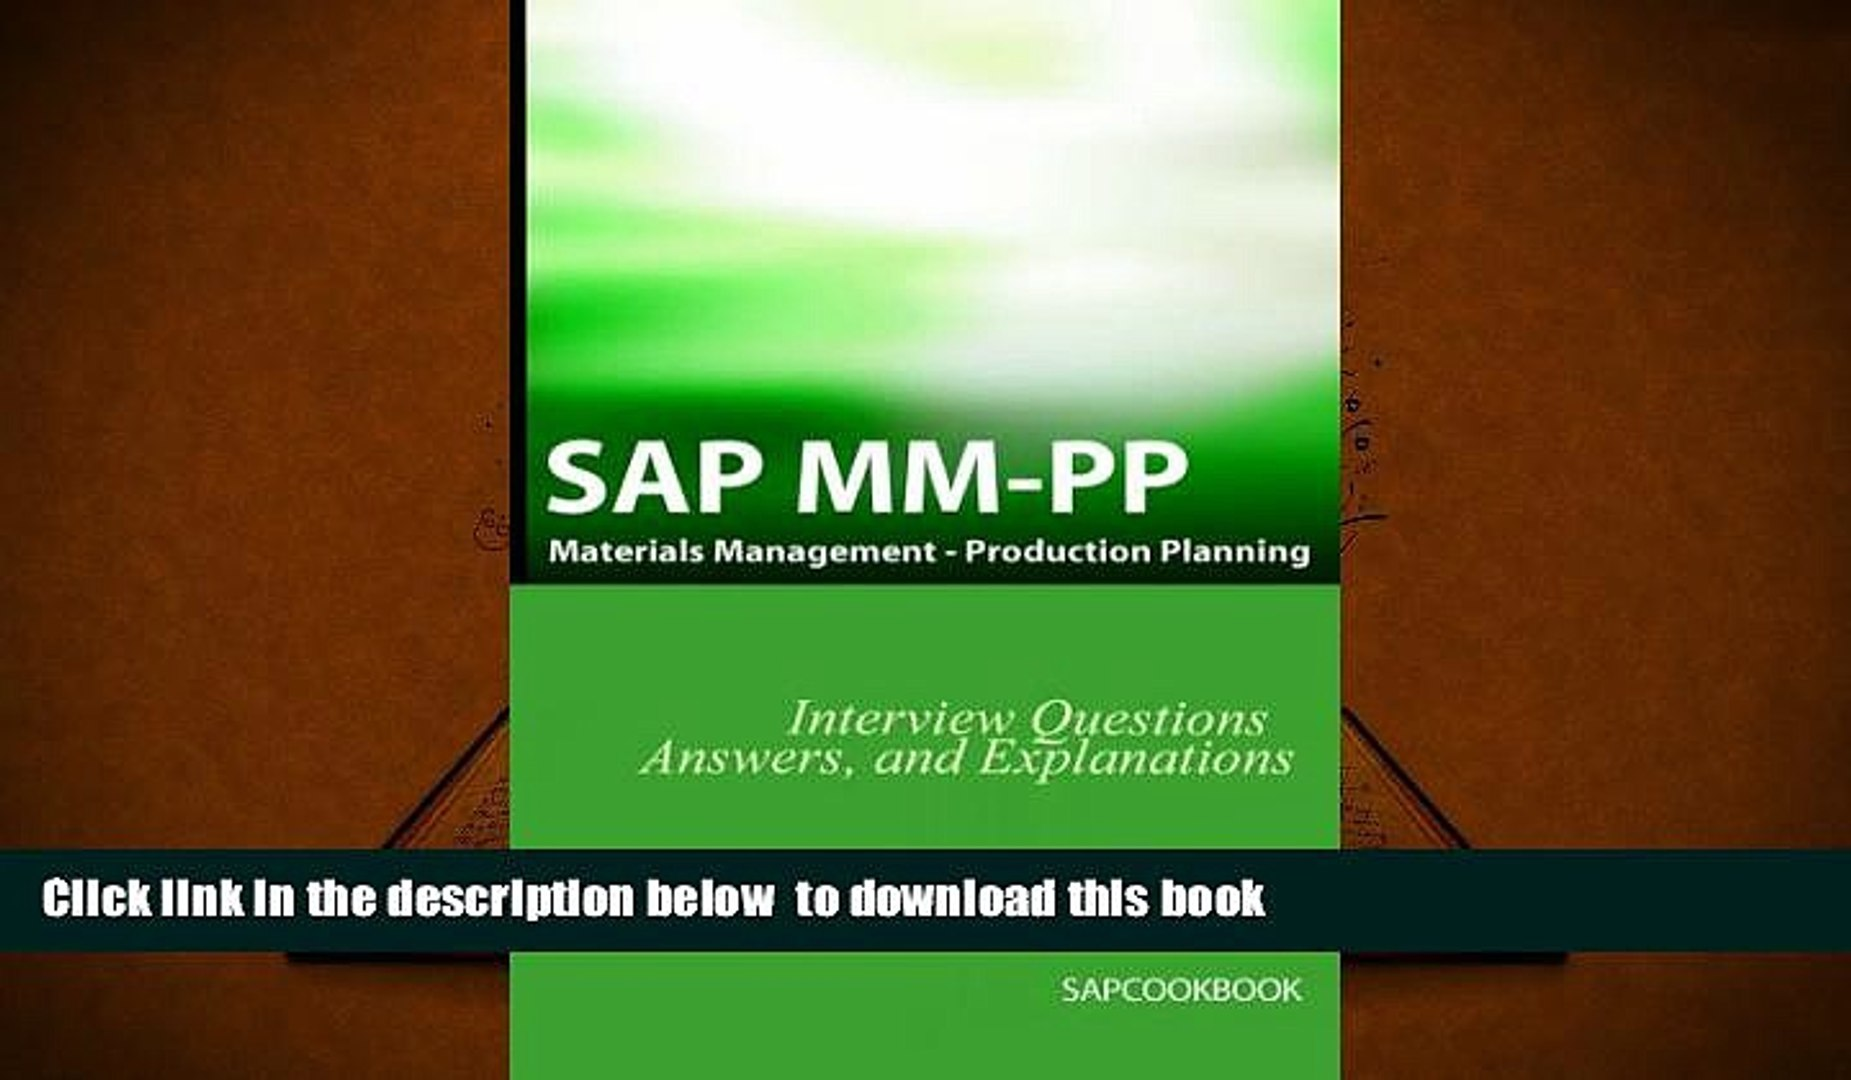 PDF [FREE] DOWNLOAD SAP MM / PP Interview Questions, Answers, and  Explanations: SAP Production